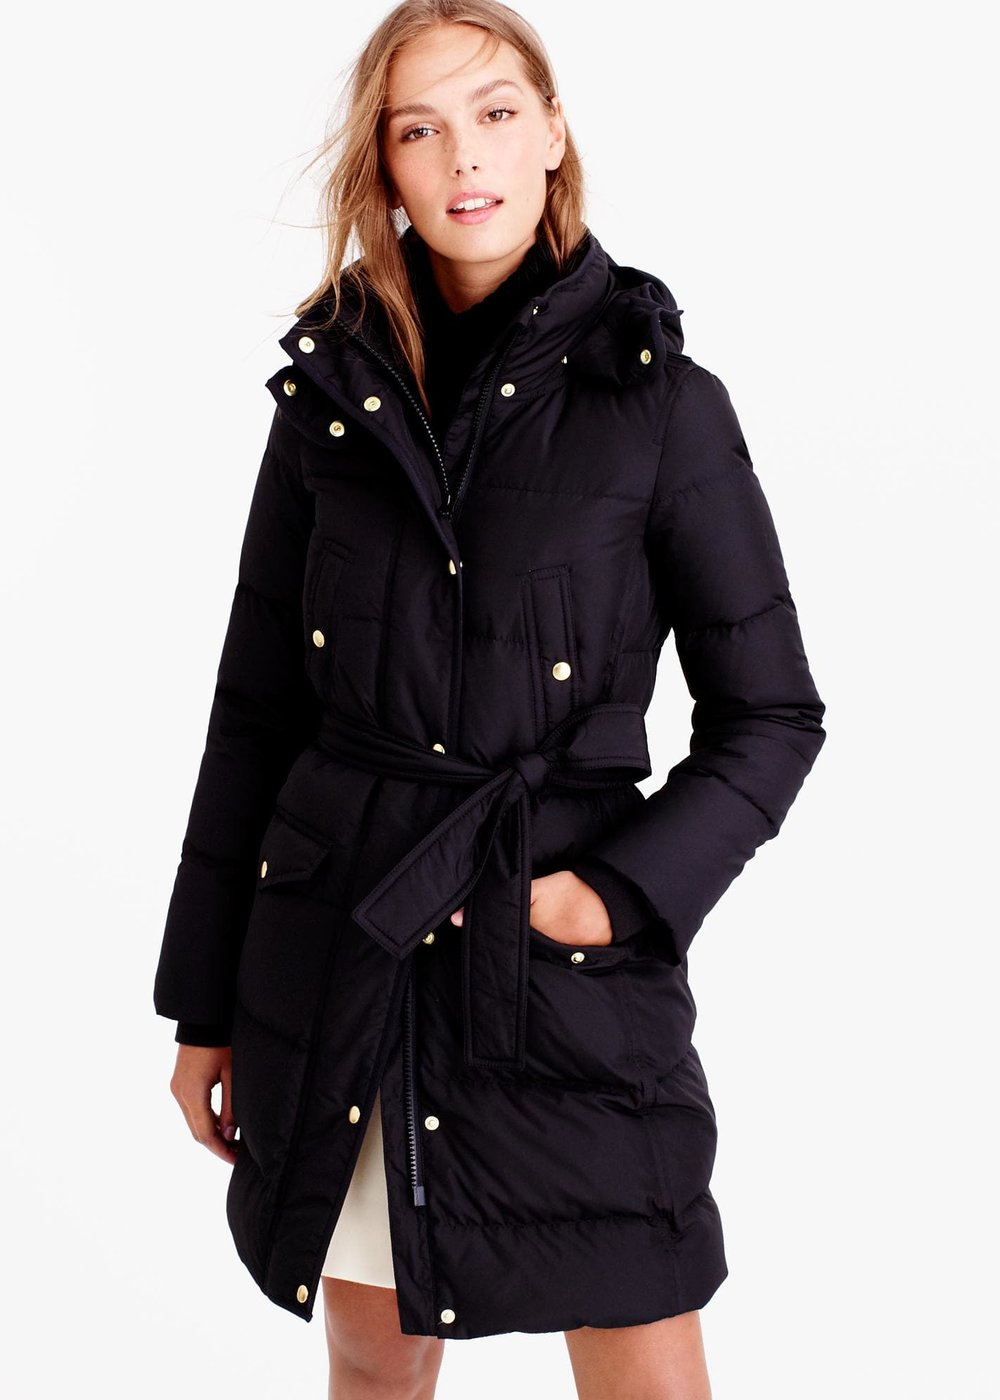 J.CREW Wintress Belted Puffer Coat  Winter, meet your new nemesis: Our long down puffer coat is a cold-weather rebel, designed to insulate (even when you can't remember what the sun feels like). A roomy hood retains extra degrees while a waist-nipping belt makes the silhouette flattering. We don't think keeping warm should mean becoming a human sleeping bag.